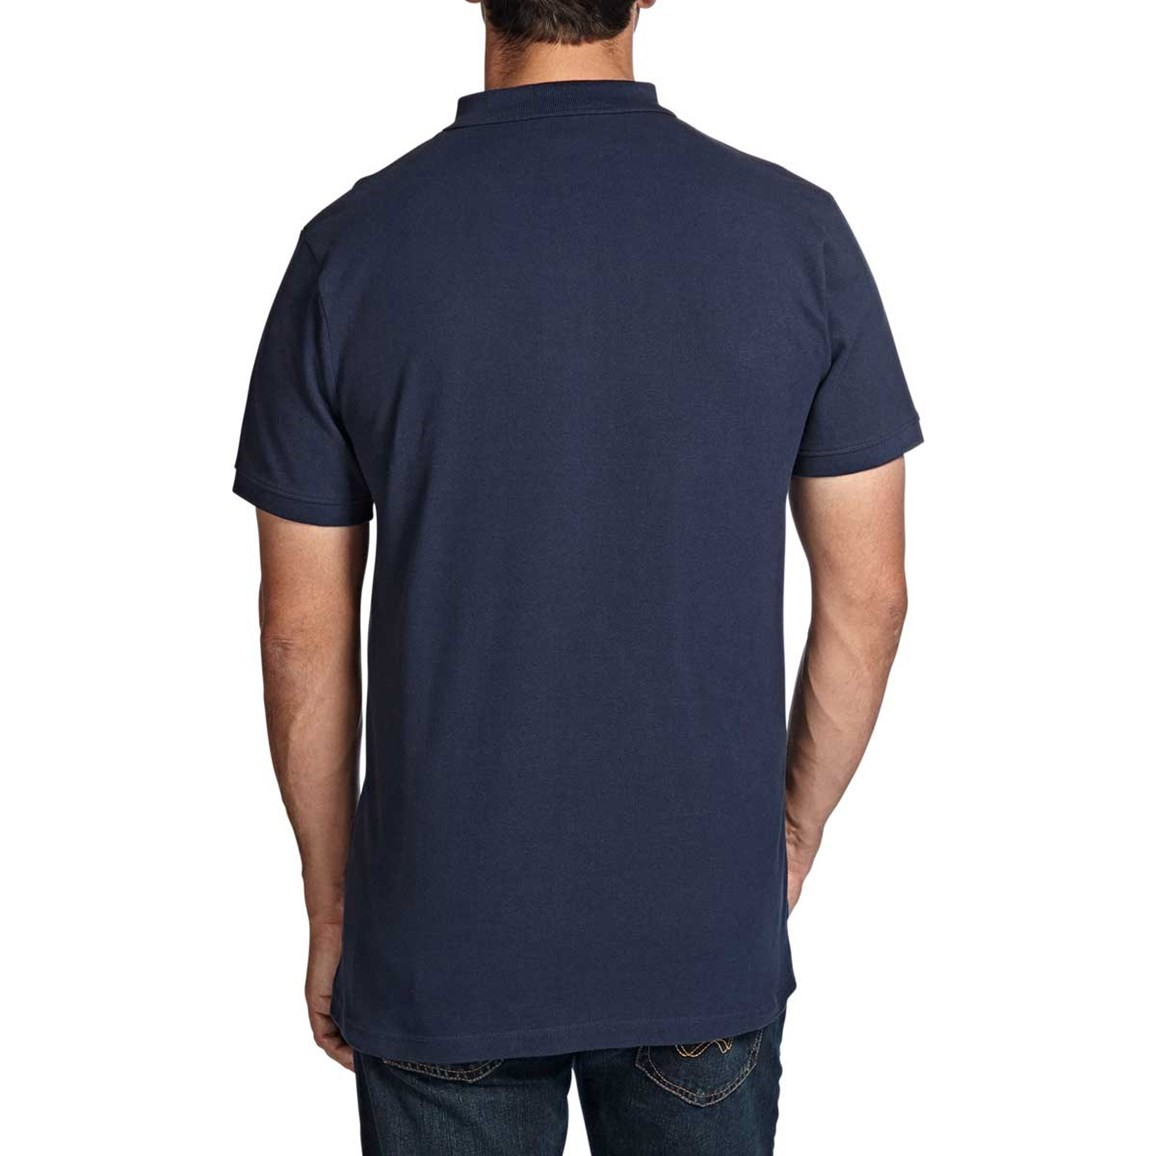 Saltash Plain Rib Collar Pique Polo Shirt Dark Navy